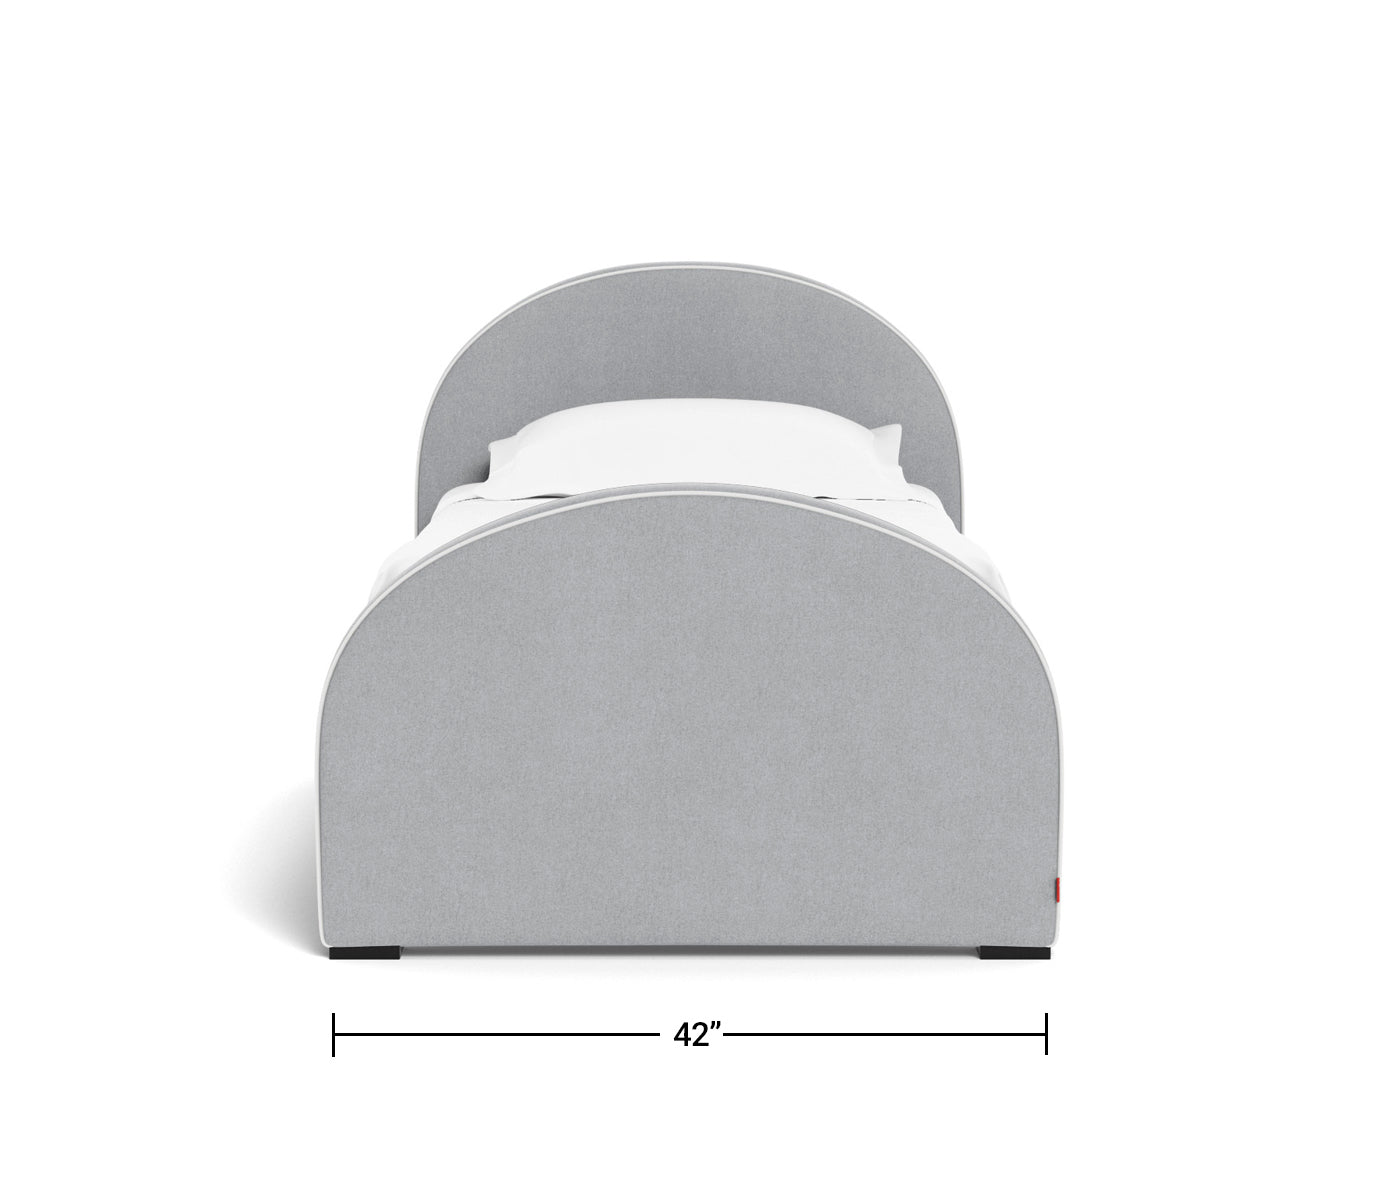 Luna Twin Bed Dimensions front view